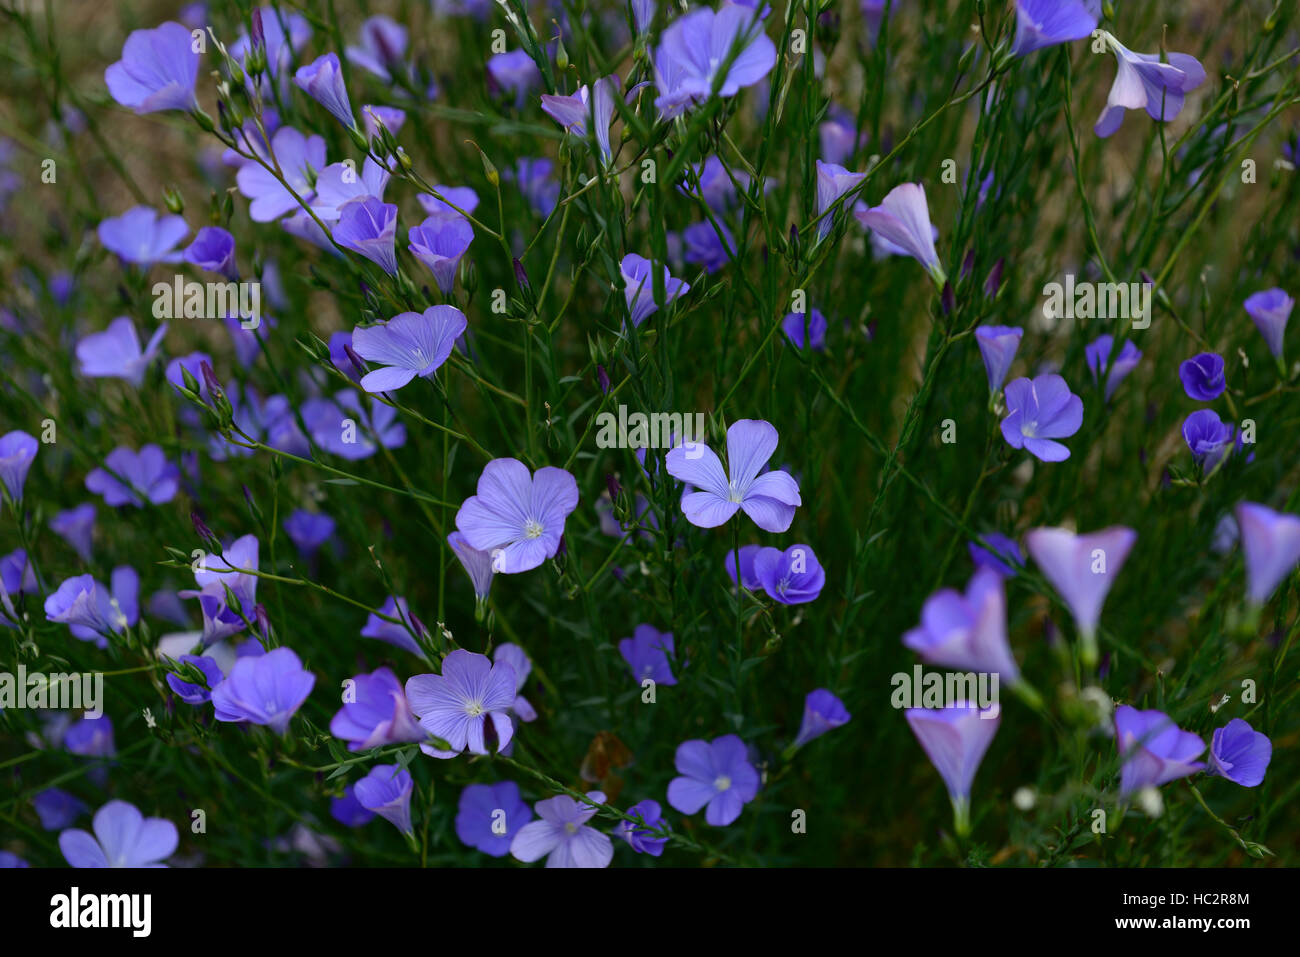 Linum Narbonense Perennial Blue Flax Flower Flowers Flowering Mass